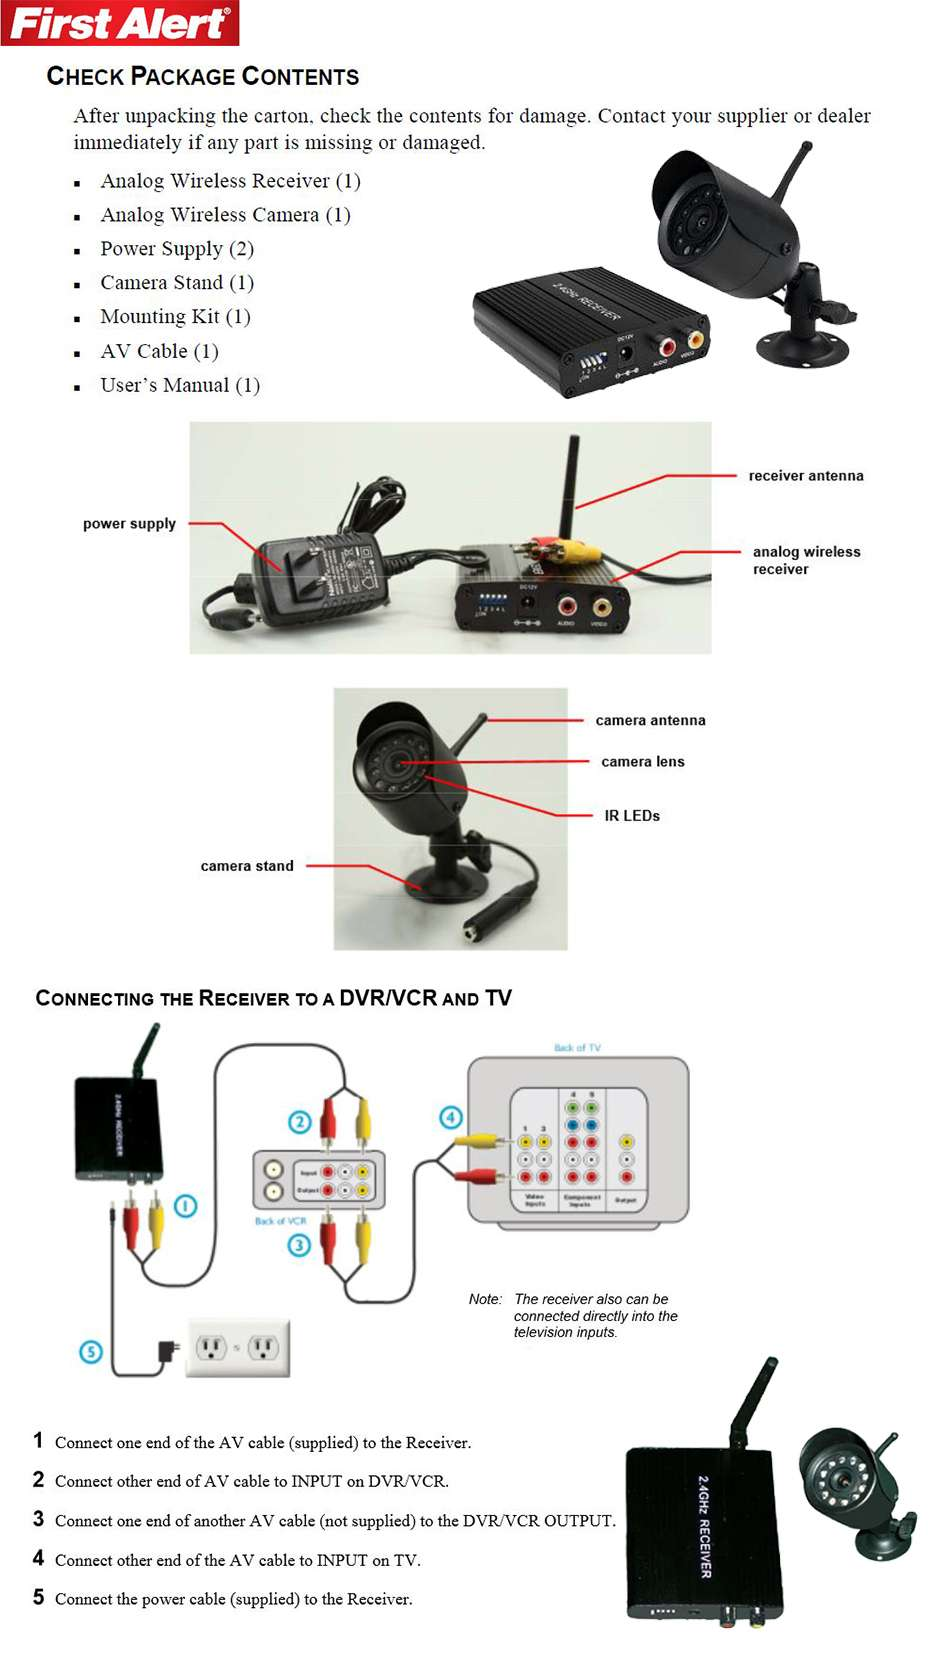 First Alert Wireless Analong Camera A 550 At Diagram Analog W Receiver Product Details